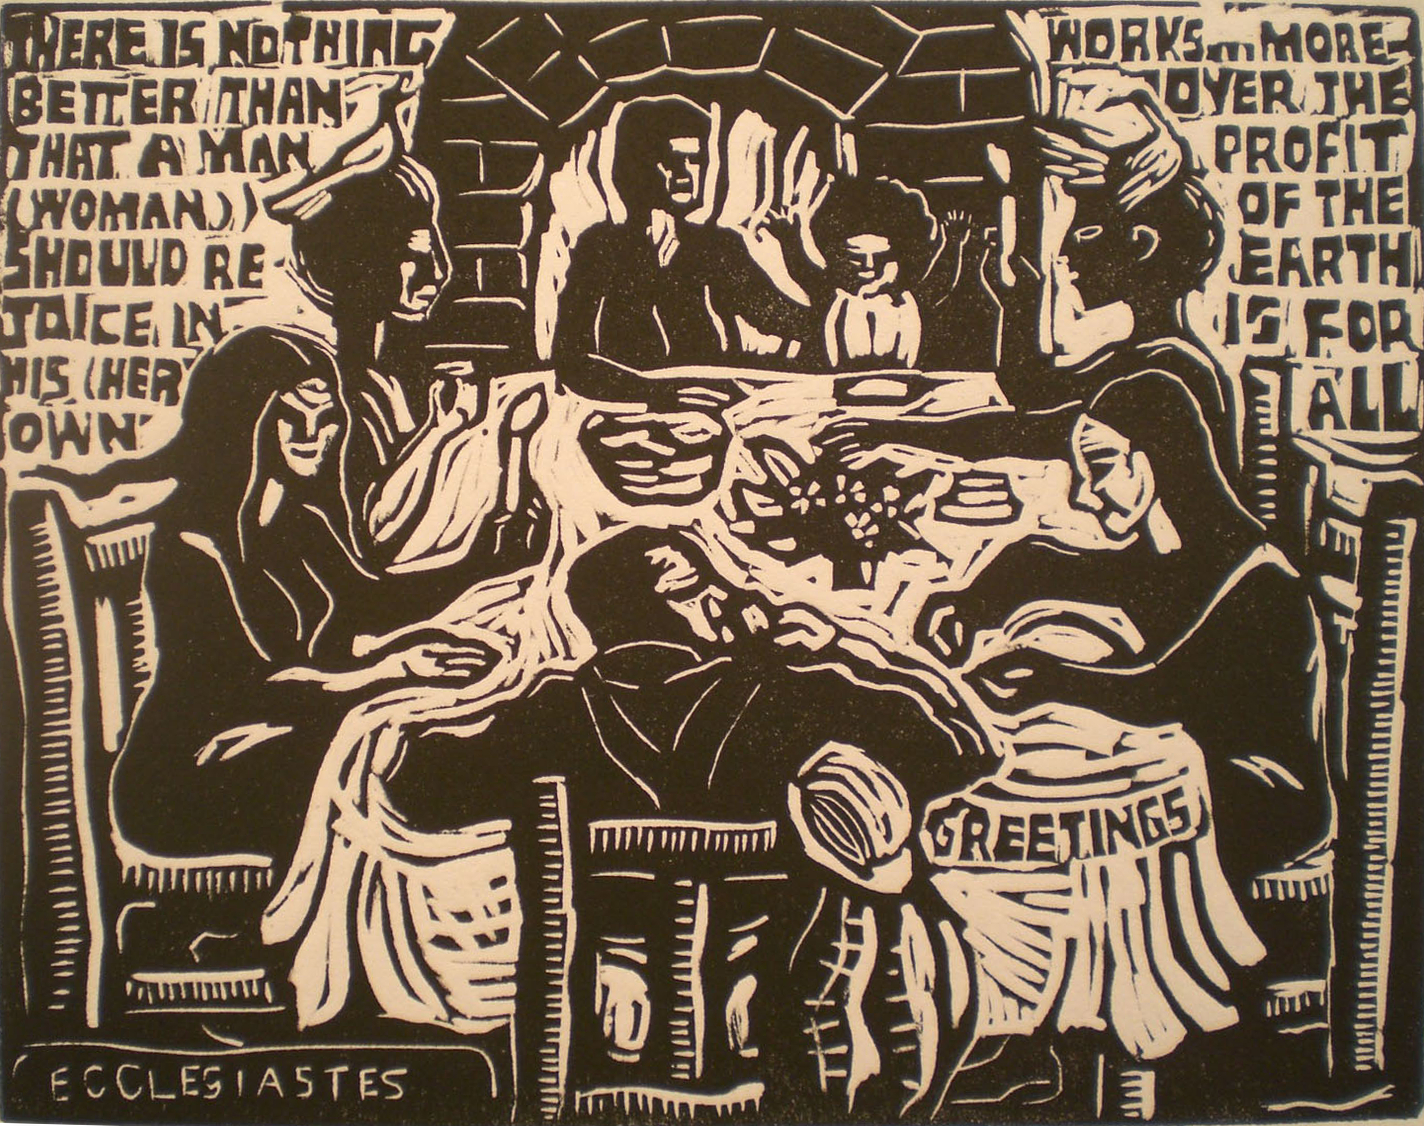 Ecclesiastes, Profit of the Earth is for All – Shared Dinner , print, 11x9, 10 of 25  Pathways Original Print Collection